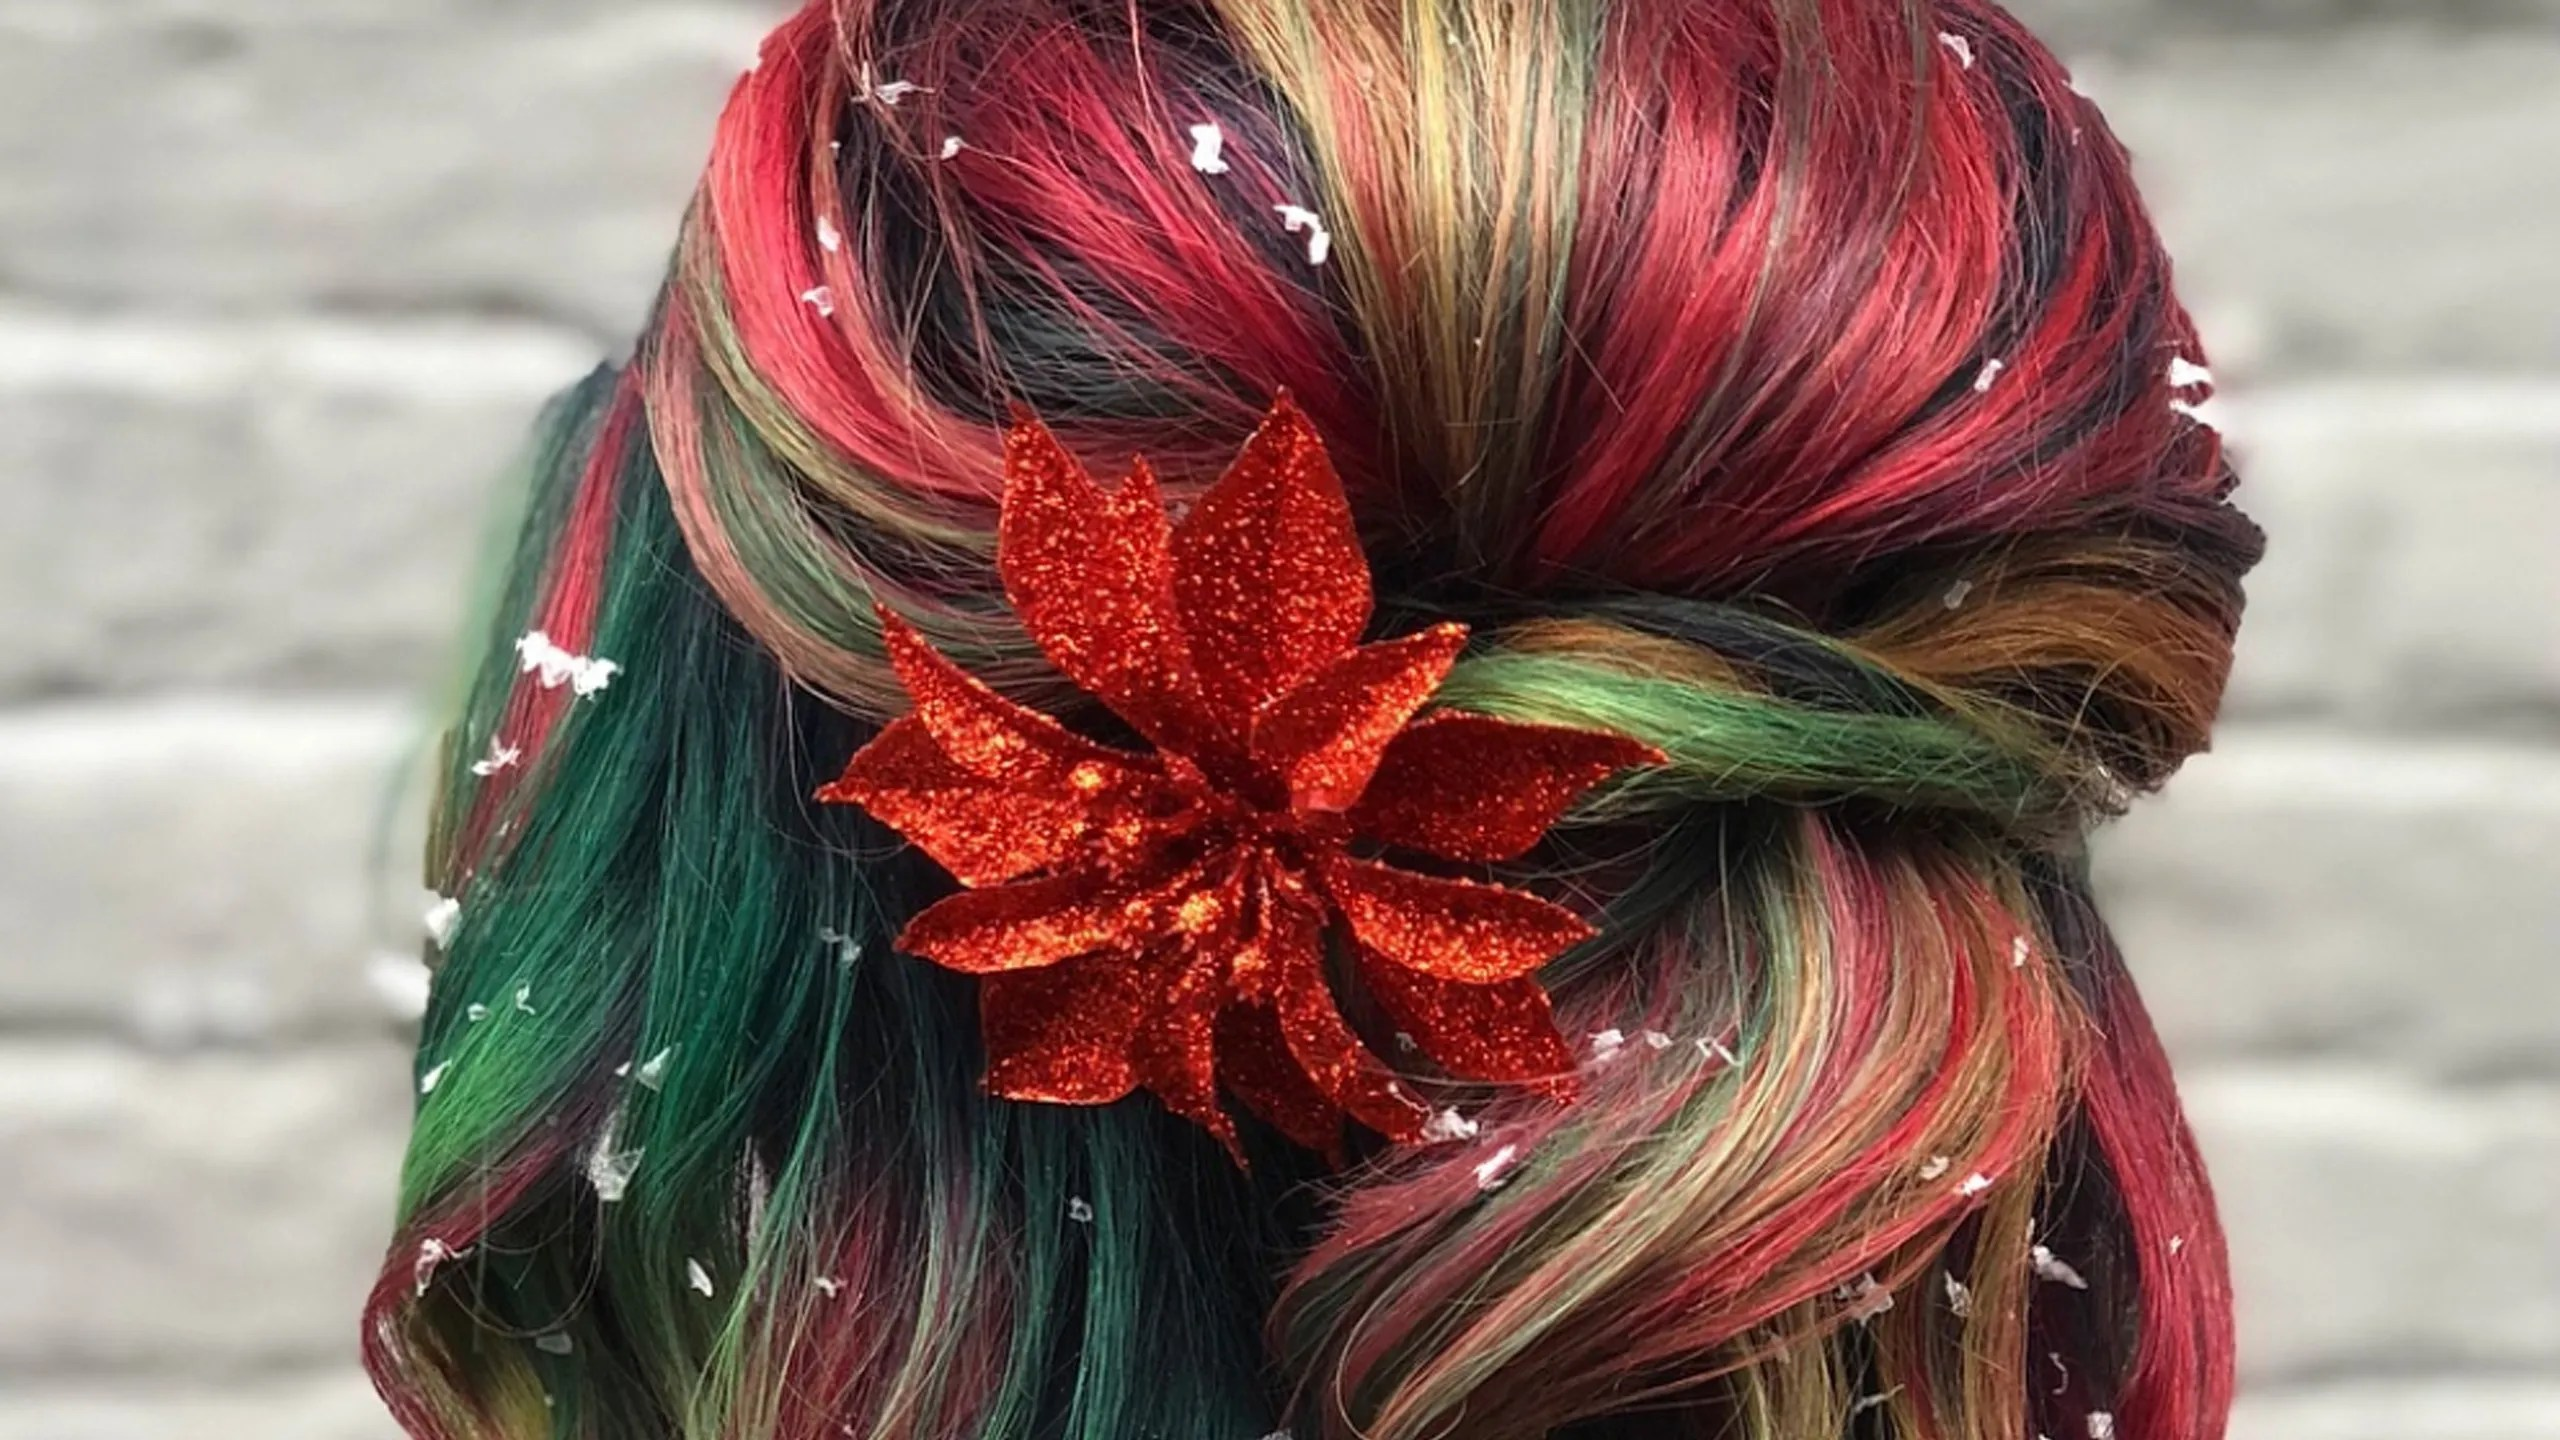 Christmas Hair Color With Red And Green Highlights Is